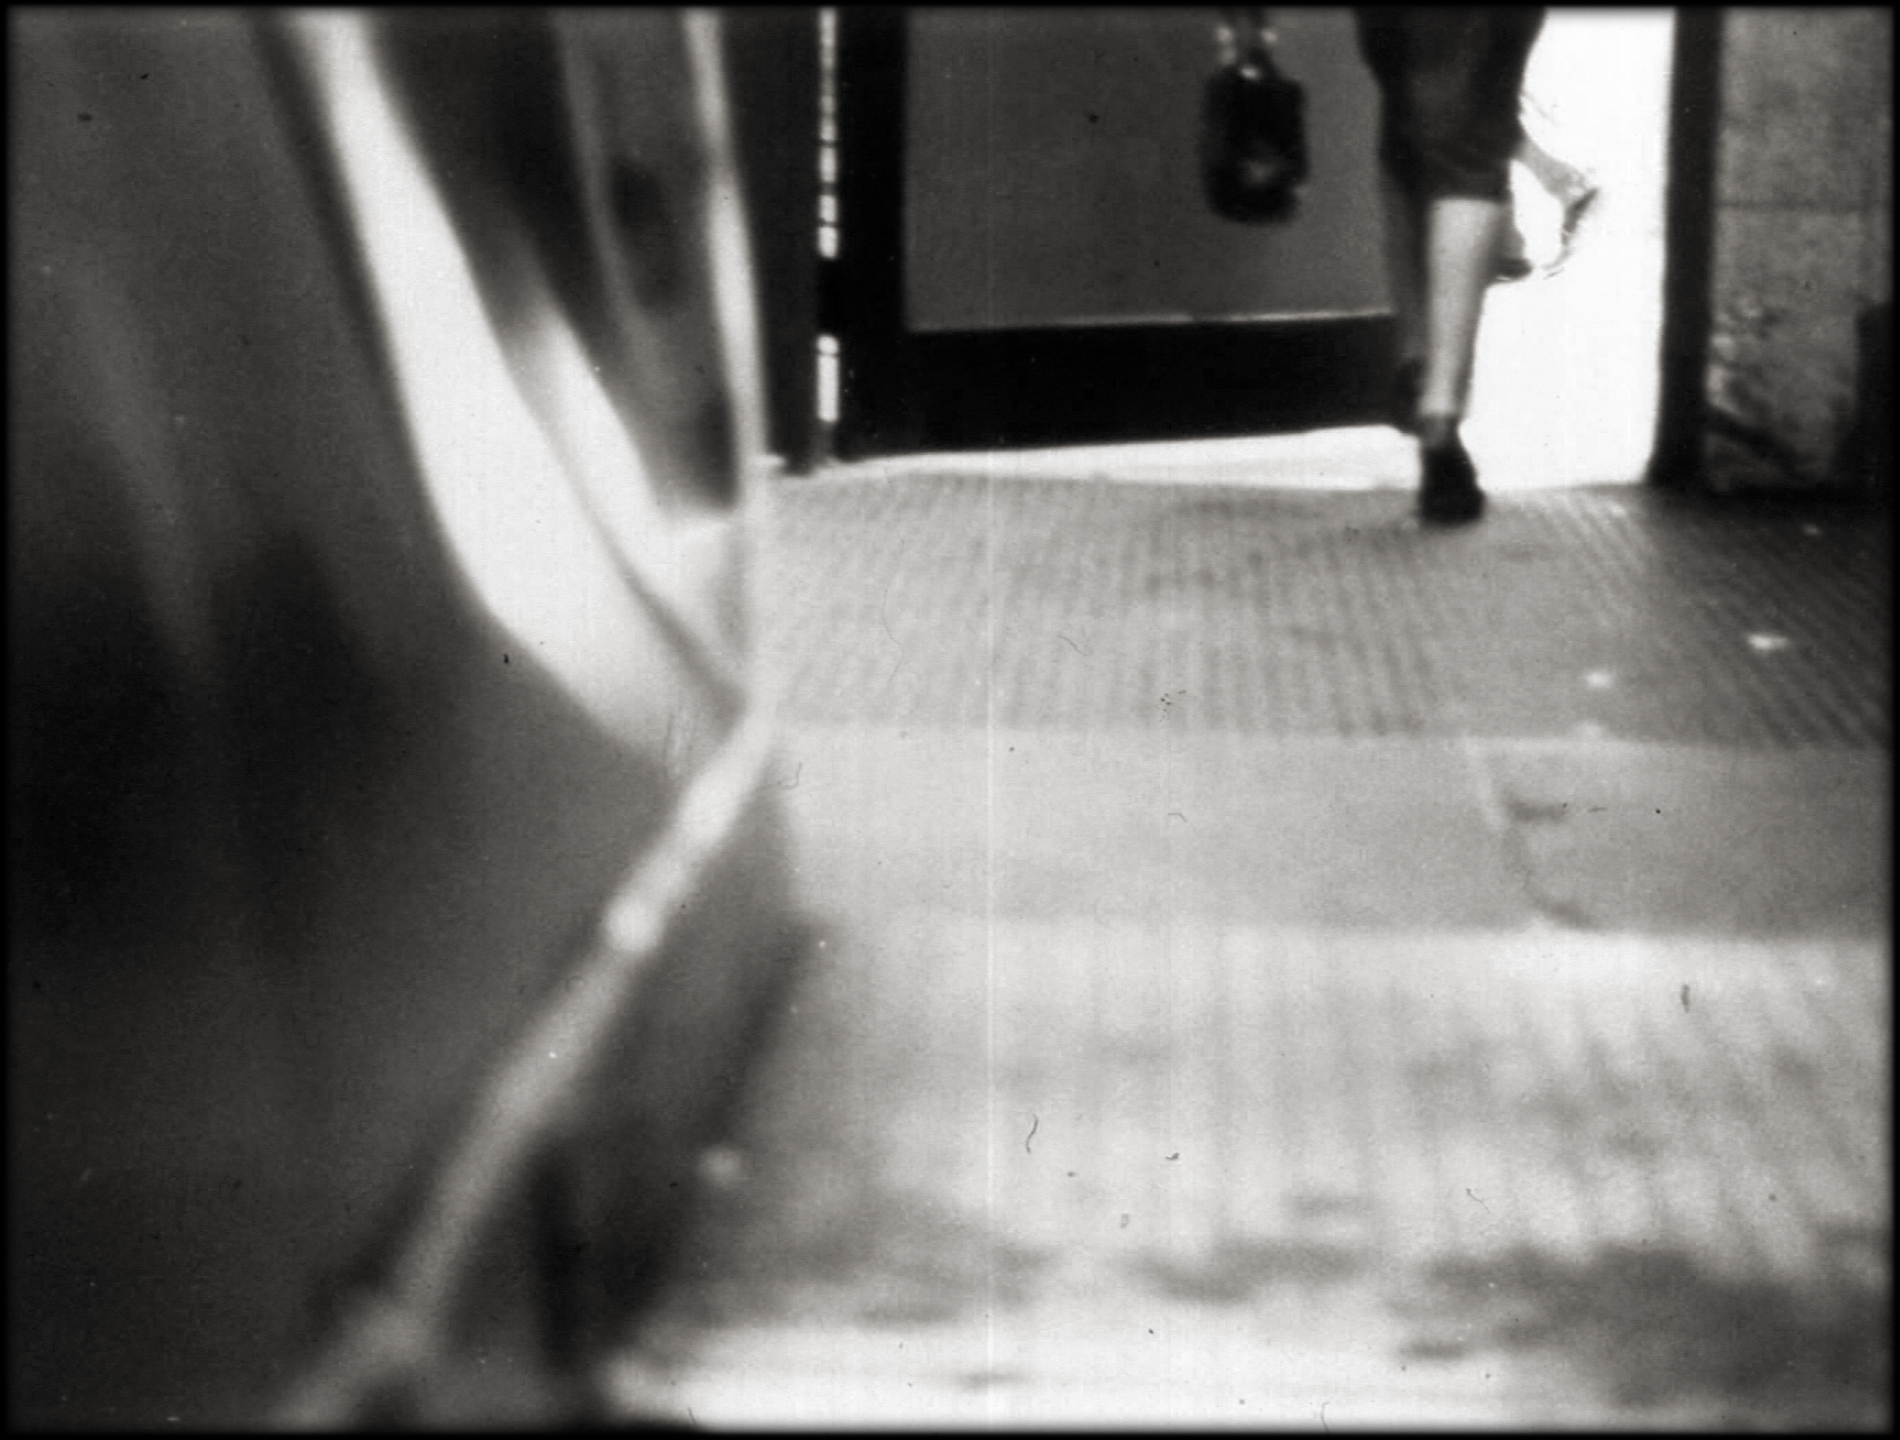 442 - Black and white photograph, seen from the top of an escalator, the back of a woman's legs as she walks thru a door to the outside. She wears a dark dress and dark shoes and carries a dark handbag.